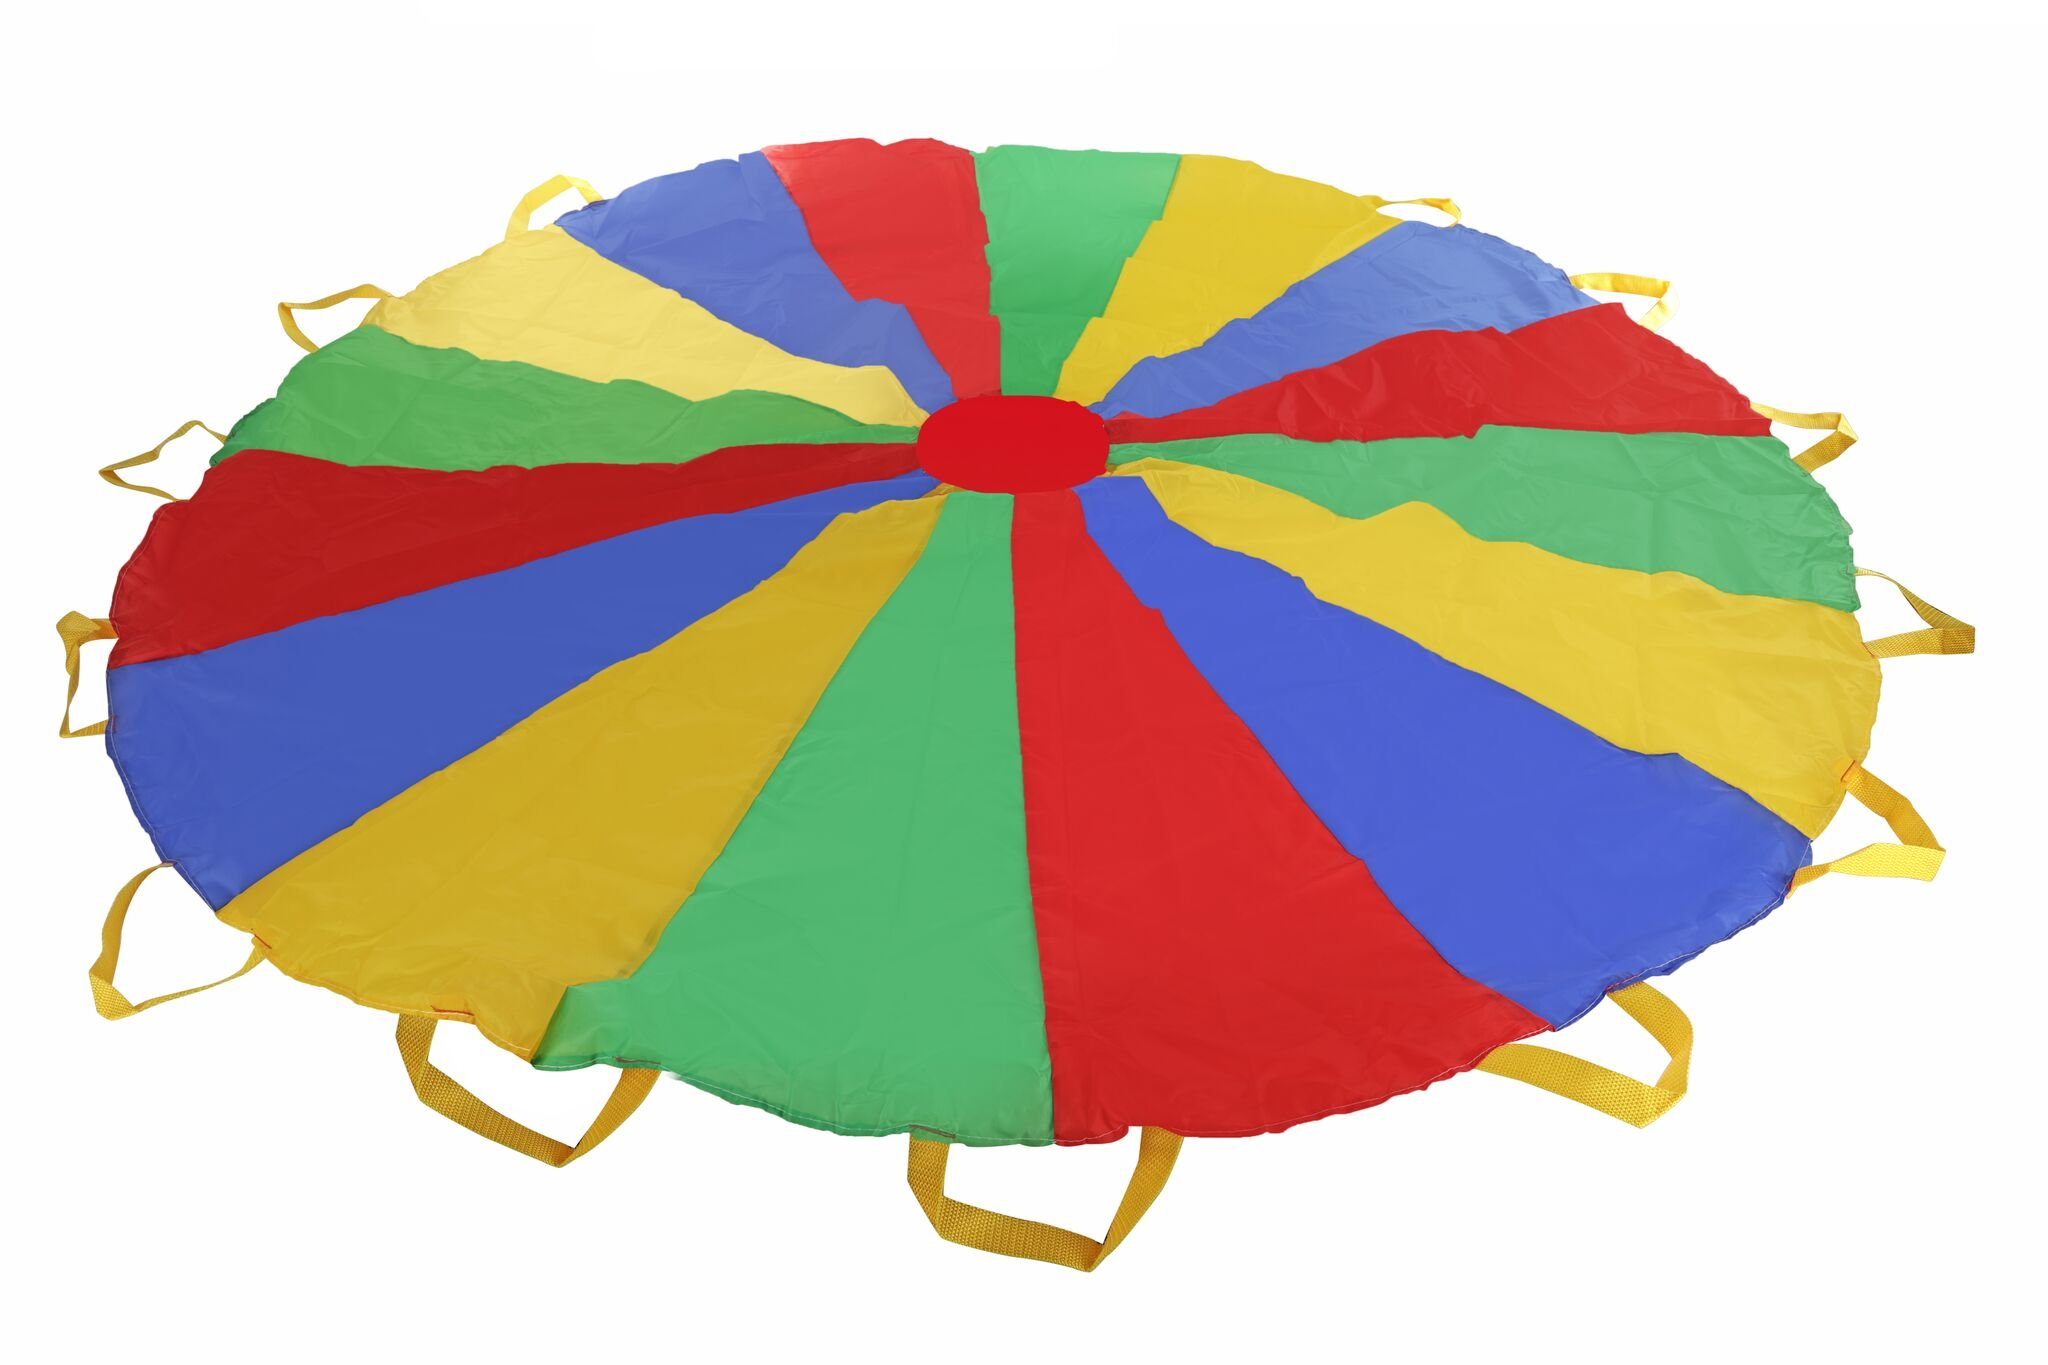 Multi-color 5 feet Parachute - Ideal Summer Sport Activity Playchute For Kids - Amazing Exerciser, Gift, Game, and more! by Toy Cubby (Image #5)